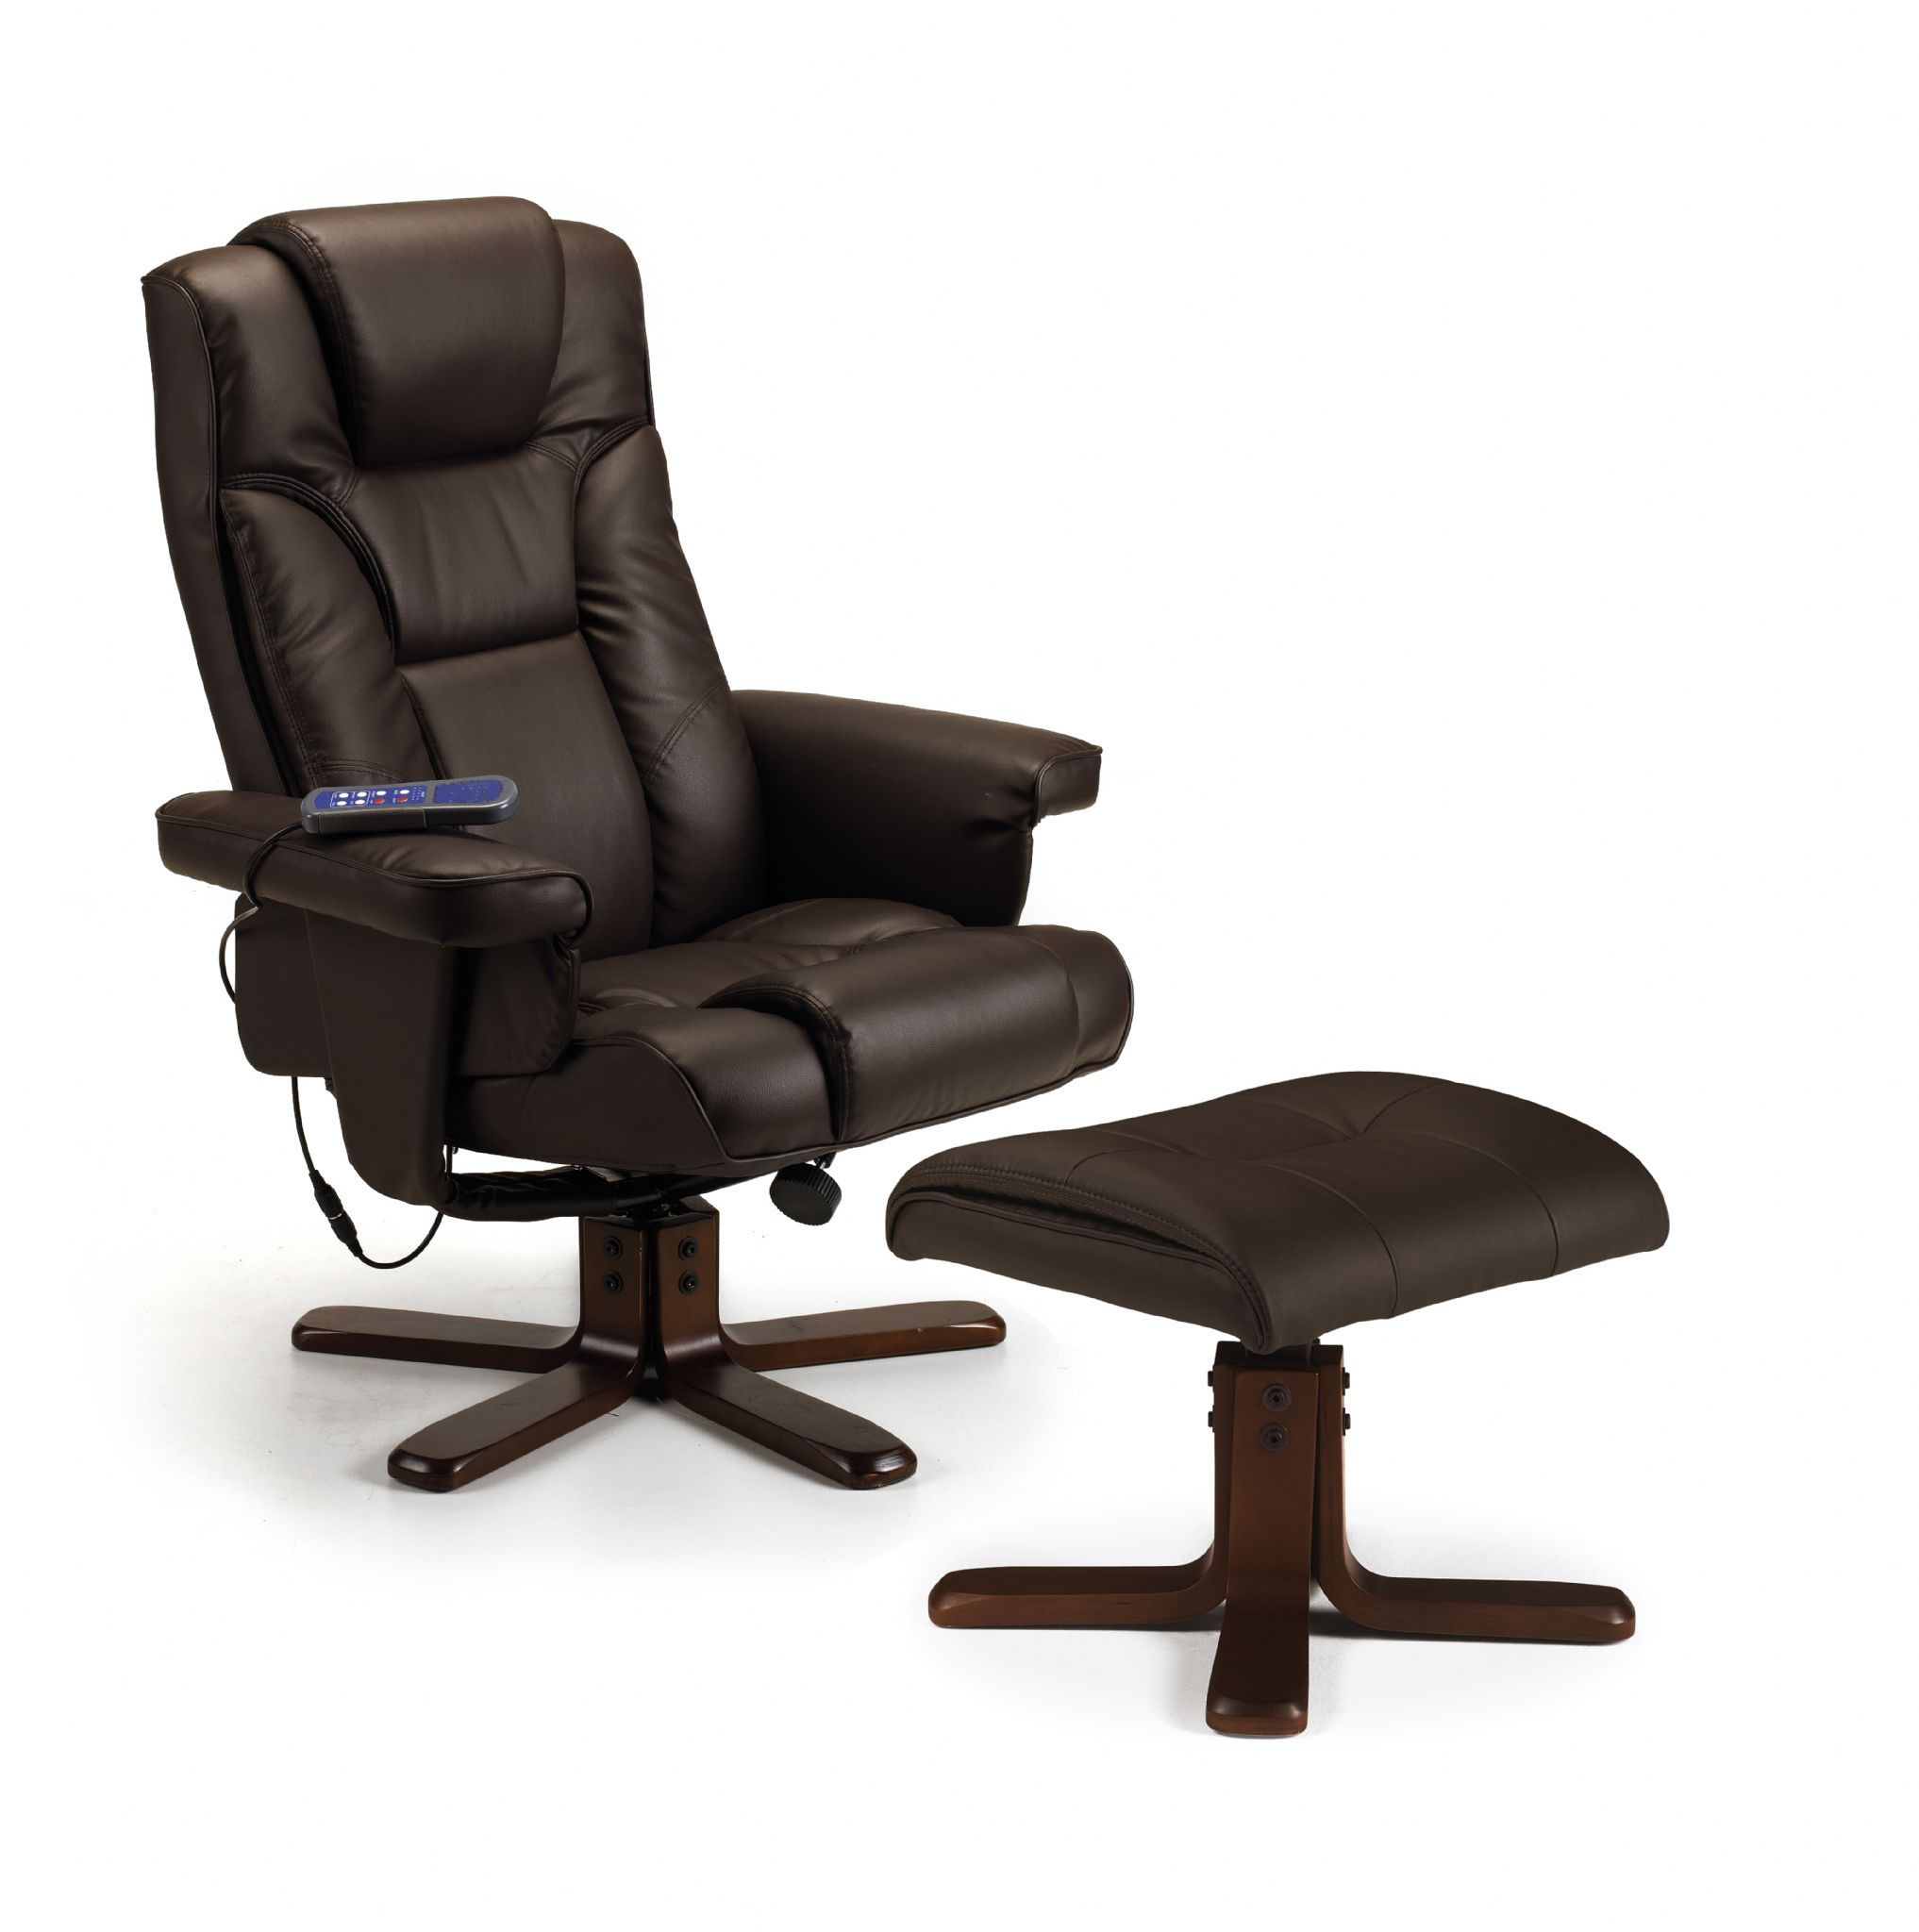 Roncesvalles Brown Massage Recliner Amp Stool Jb297